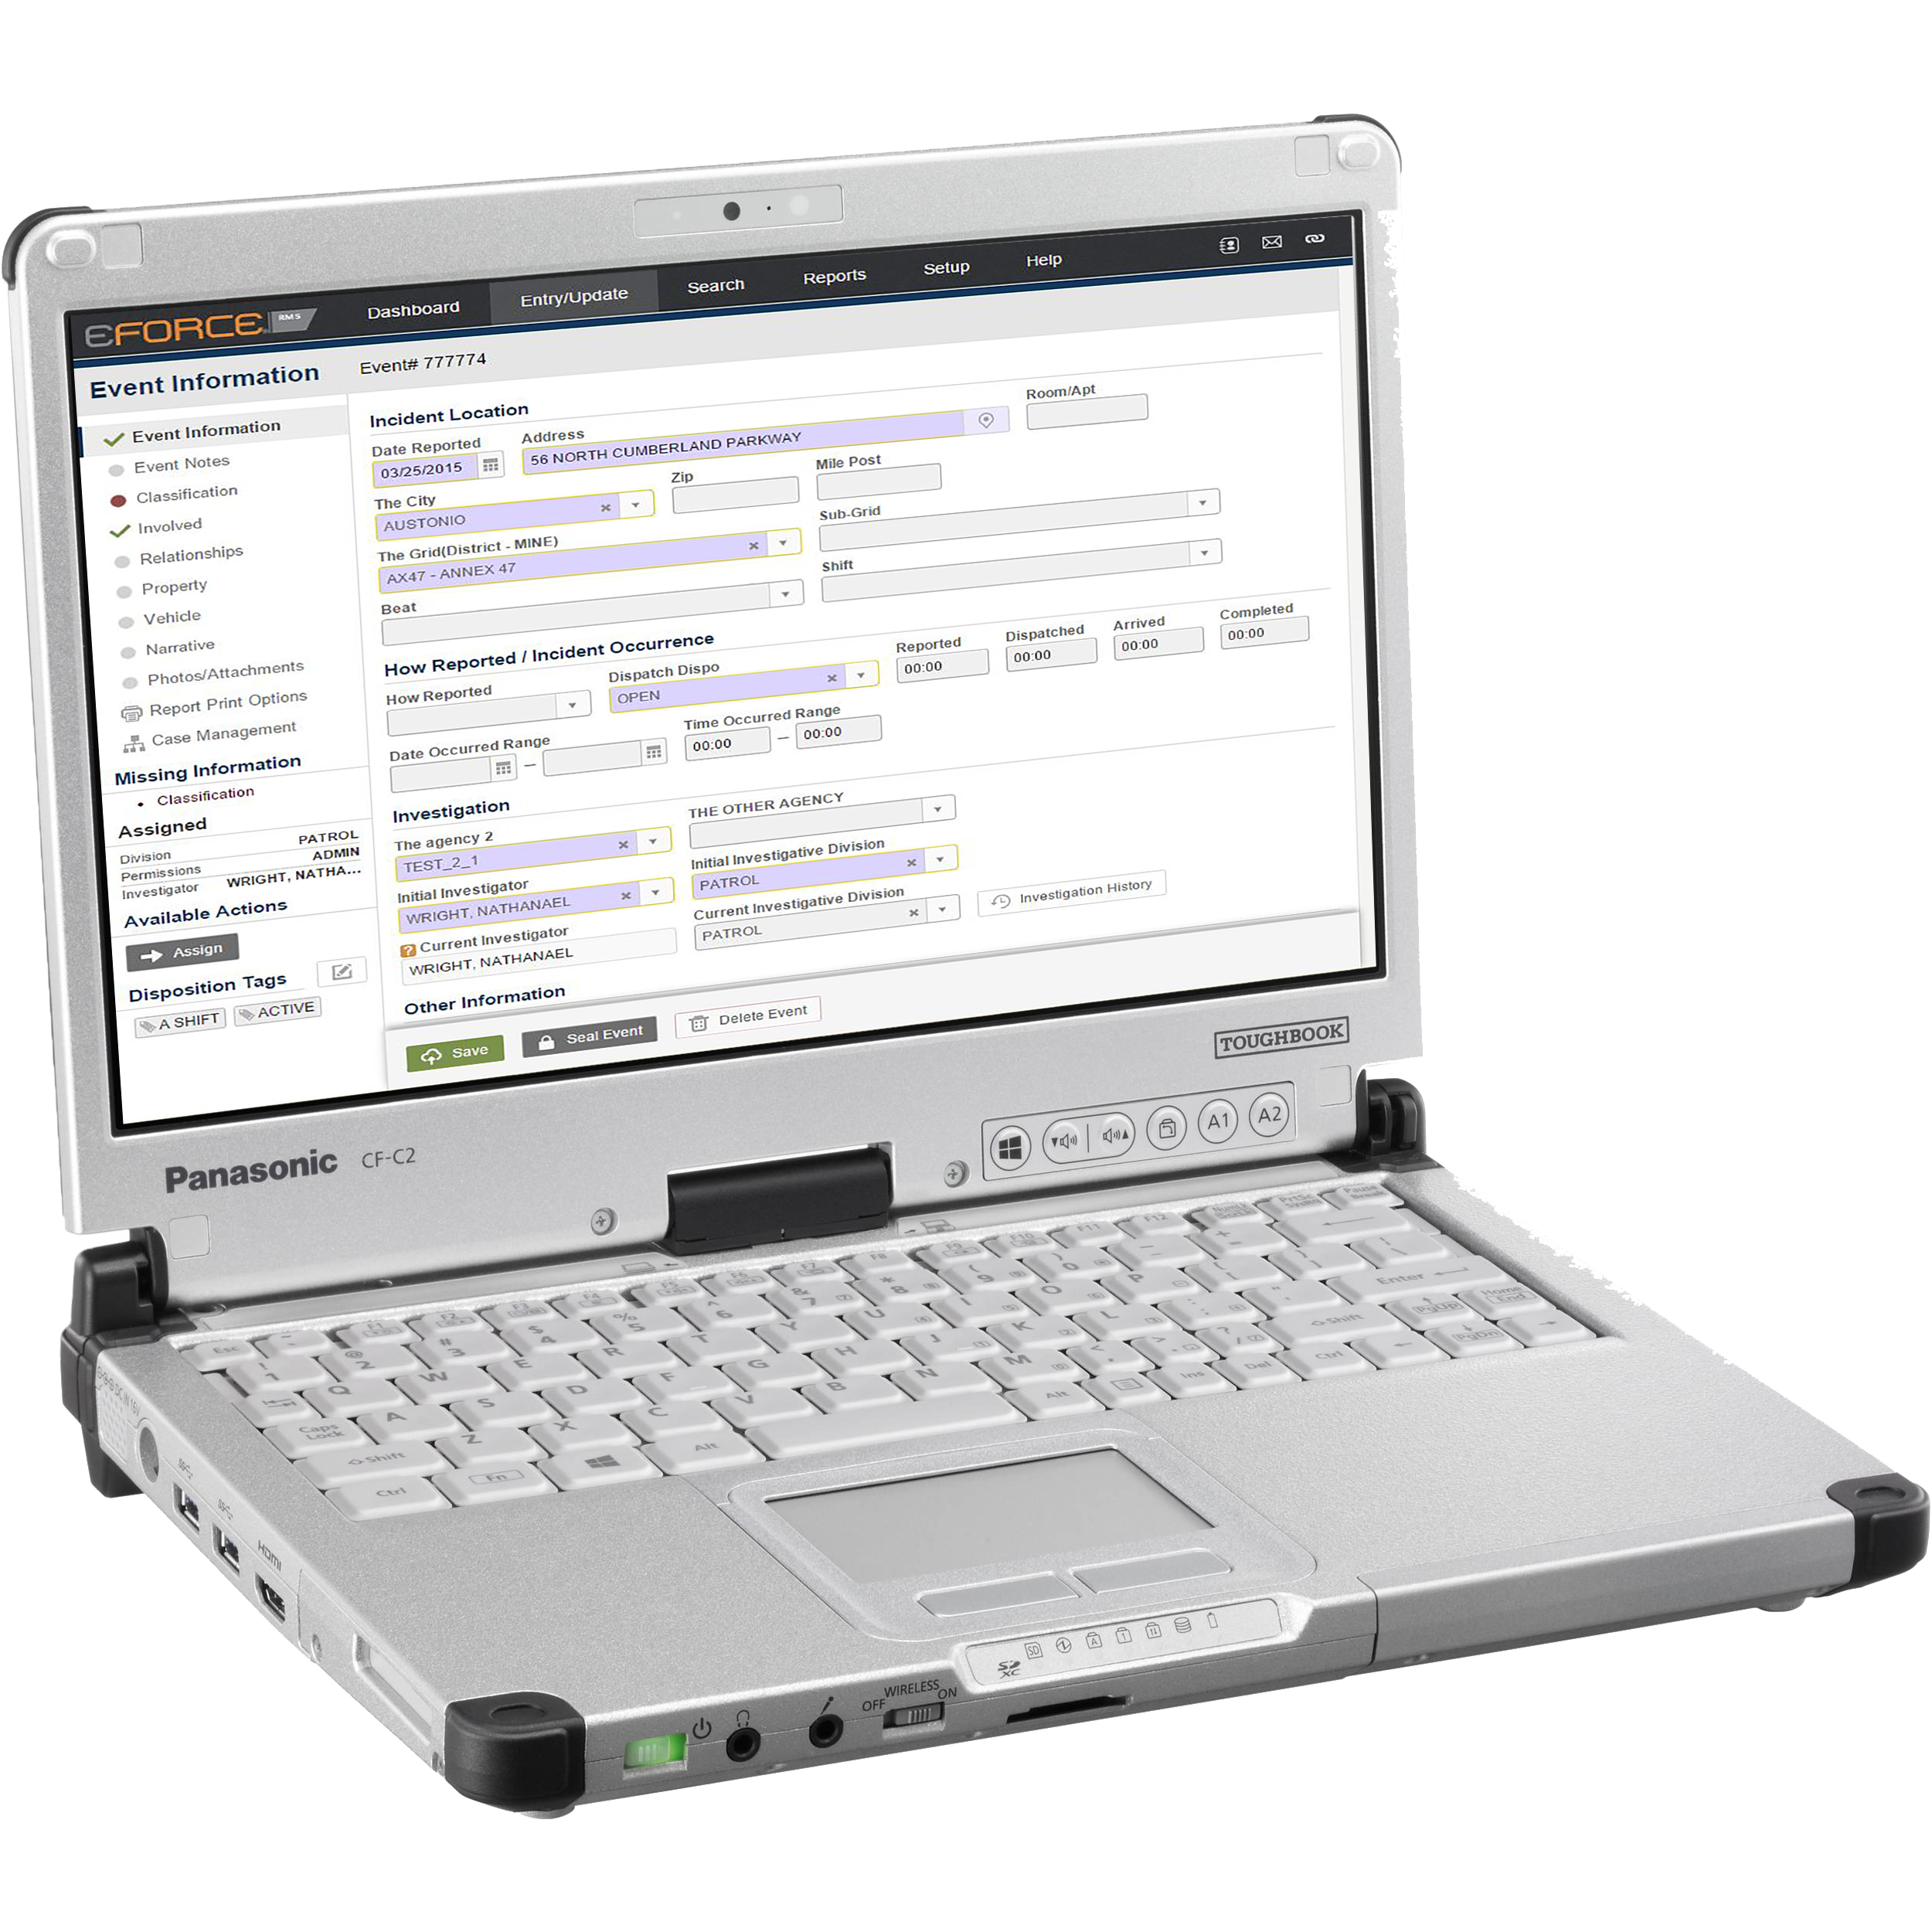 RMS on toughbook